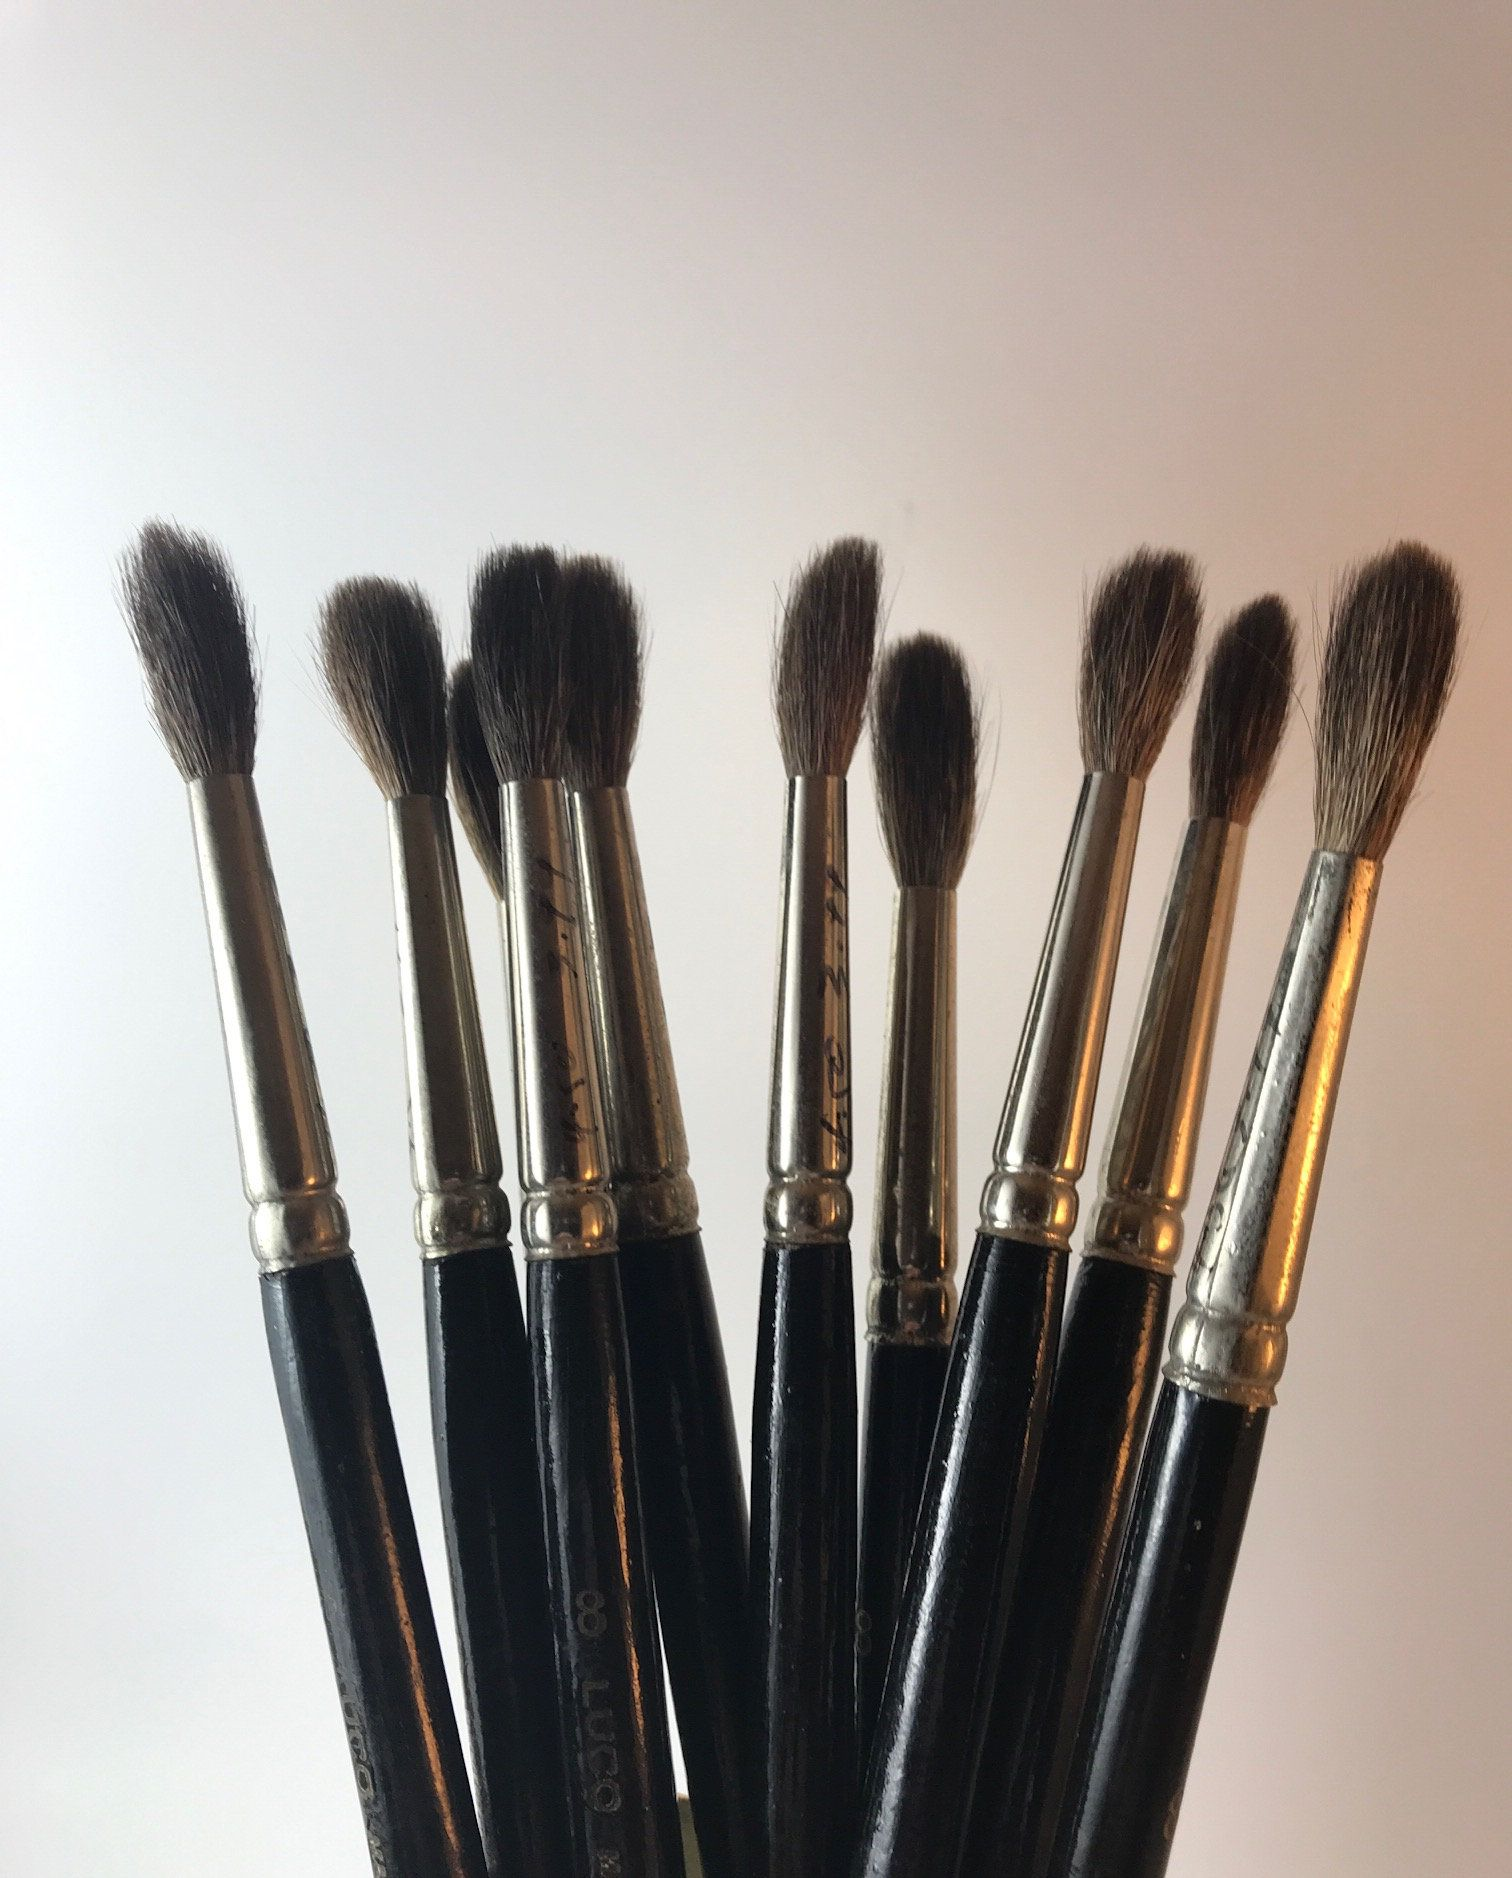 Luco Natural Hair Artist Paint Brushes Vintage Round Artist Paint Brushes Natural Hair Brushes Face Painting Natural Hair Brush Artistic Hair Face Painting